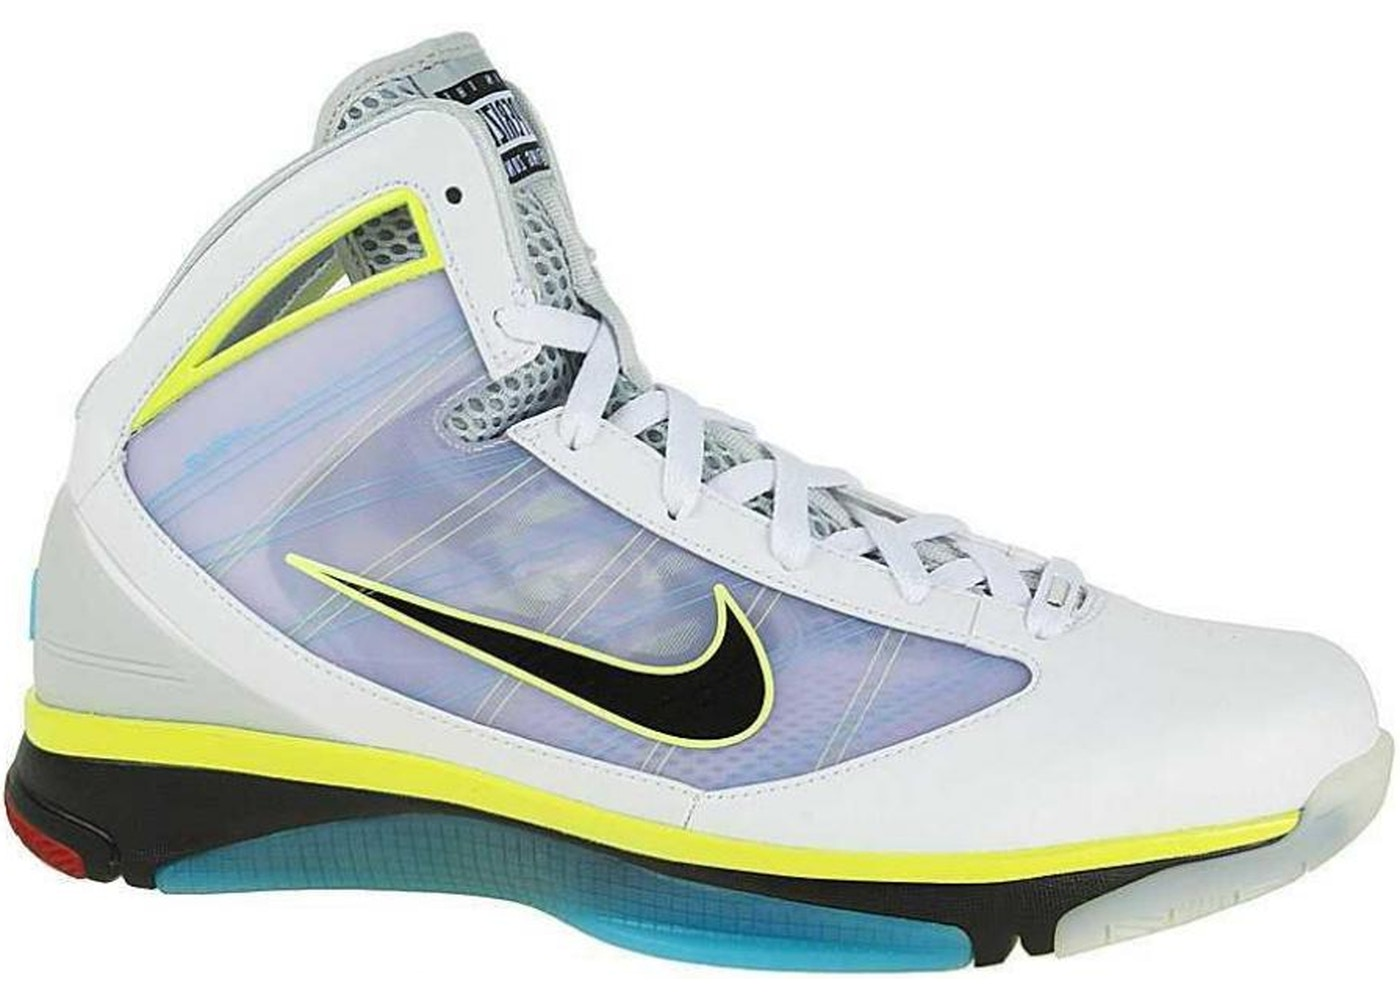 ナイキ NIKE 白 ホワイト CAN'T スニーカー 【 WHITE HYPERIZE MEN JUMP BILLY HOYLE BLACKNEUTRAL GREYBALTIC BLUE 】 メンズ